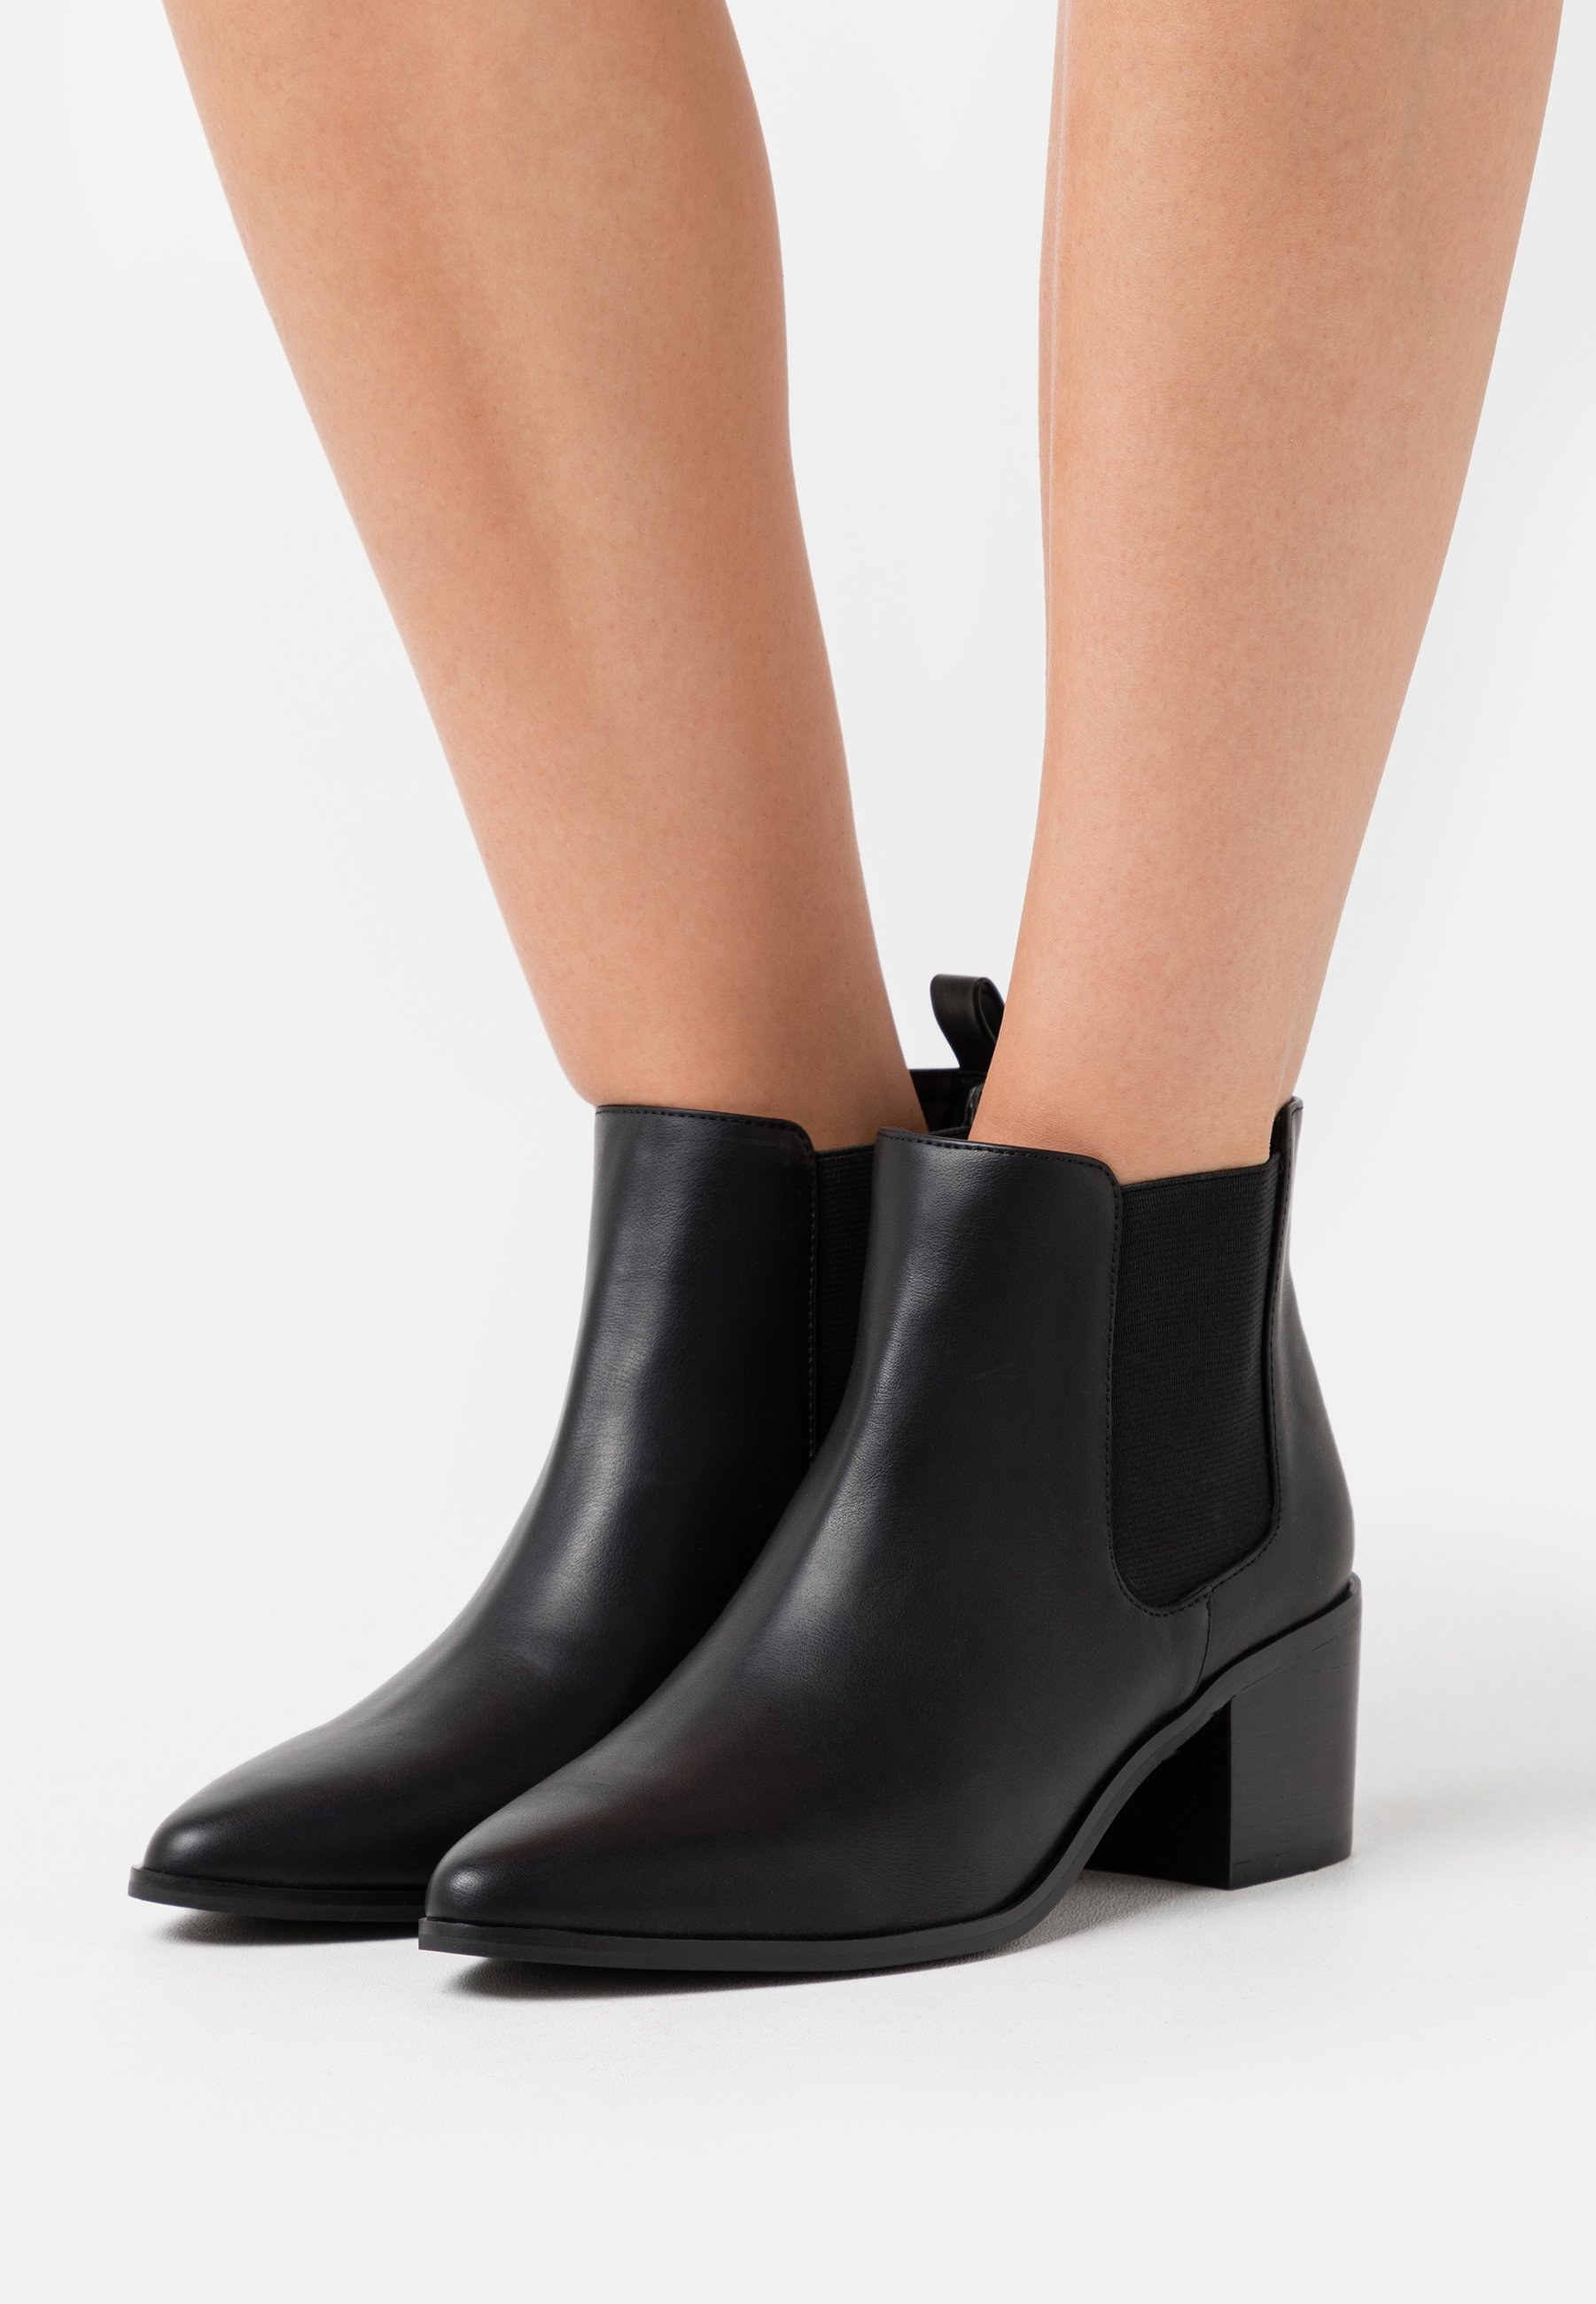 2020 Collections Women's Shoes Bianco BIAABBIE CHELSEA  Ankle boots black RQgQ92GKY iMpOTF95V